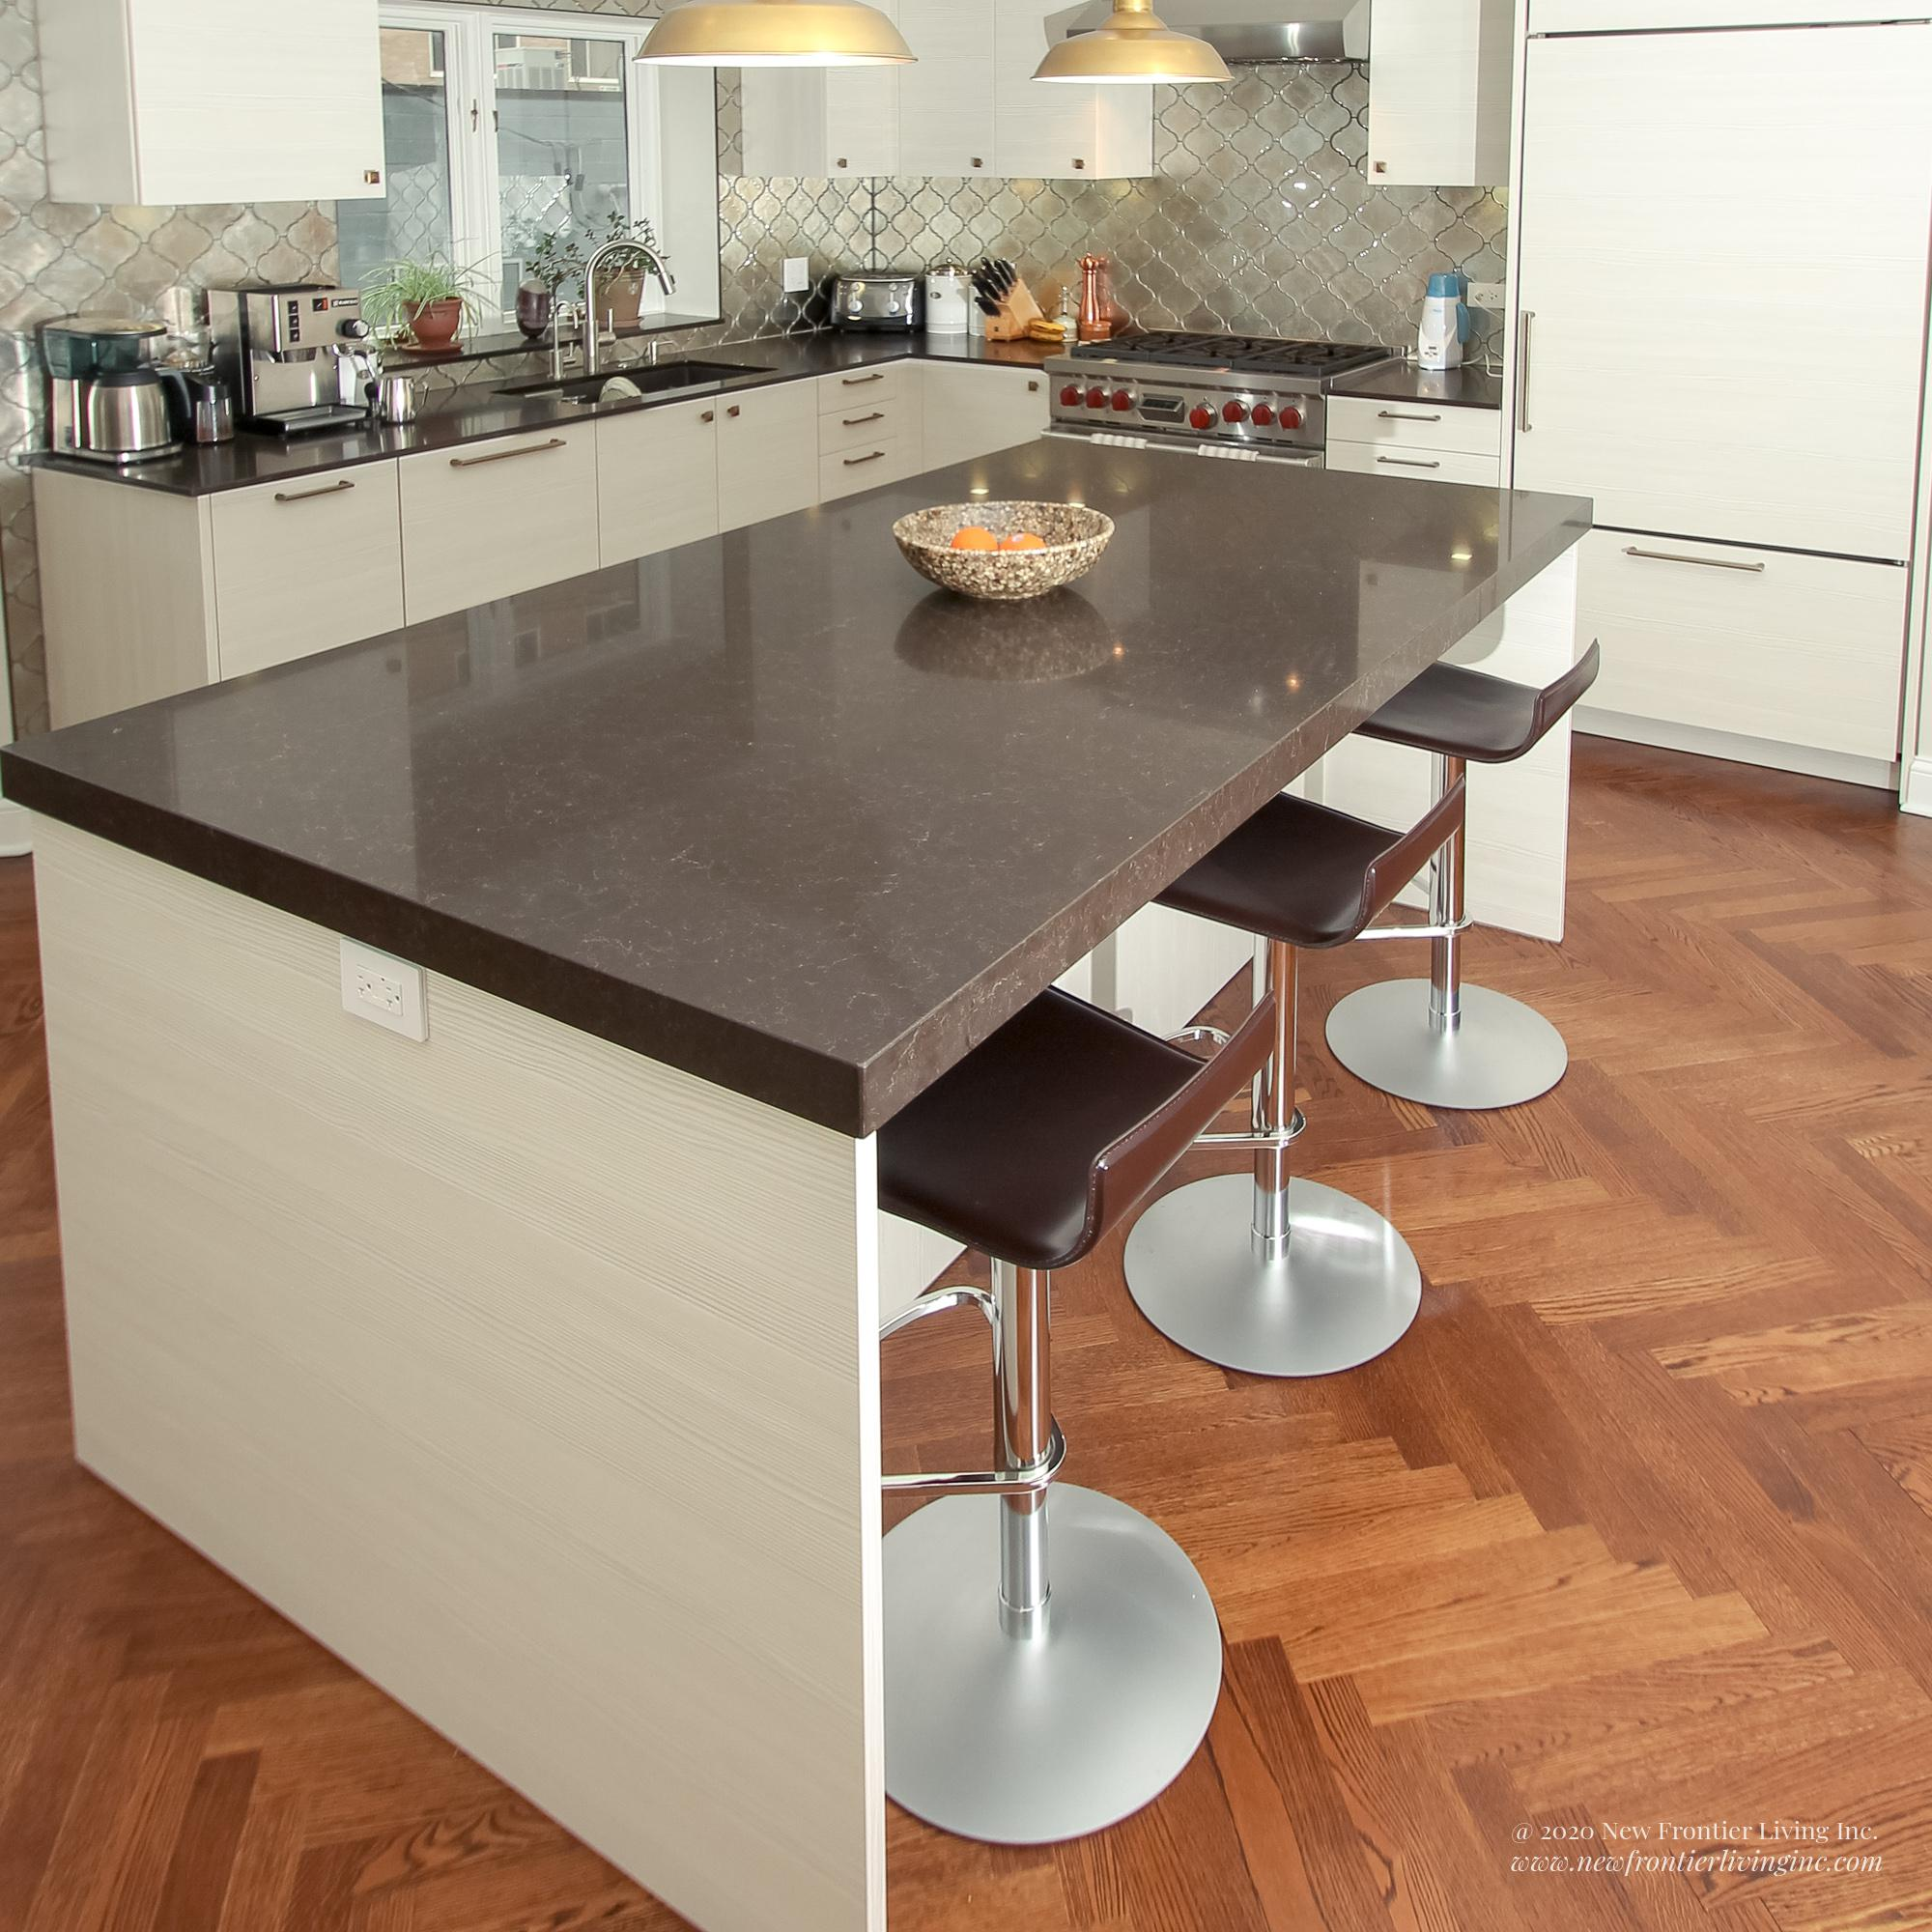 Cream kitchen with black countertops with an island and three bar stools close-up